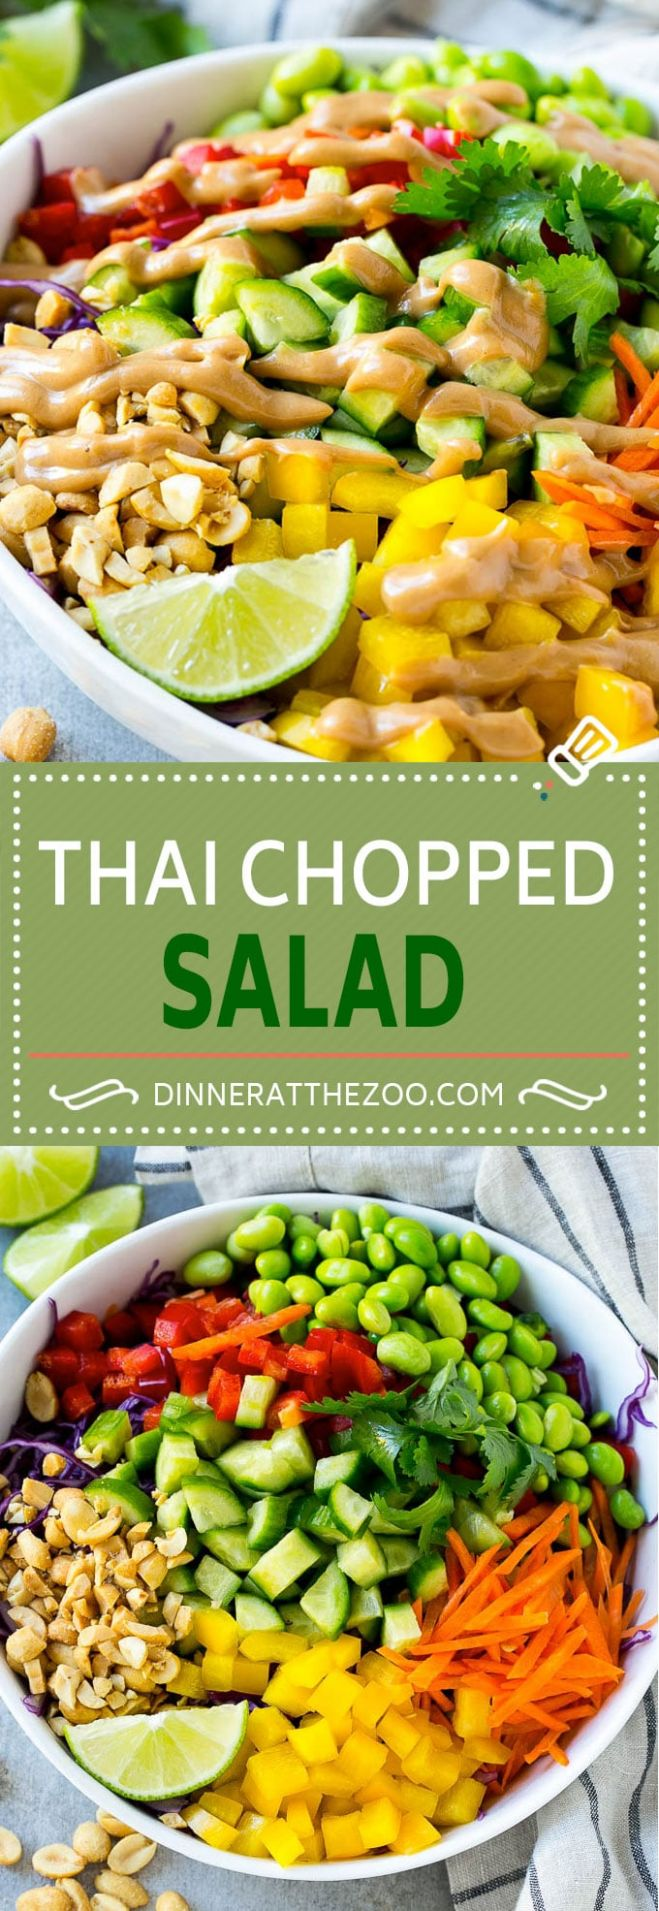 12 Healthy Salad Recipes - Dinner at the Zoo - Salad Recipes For Dinner Party